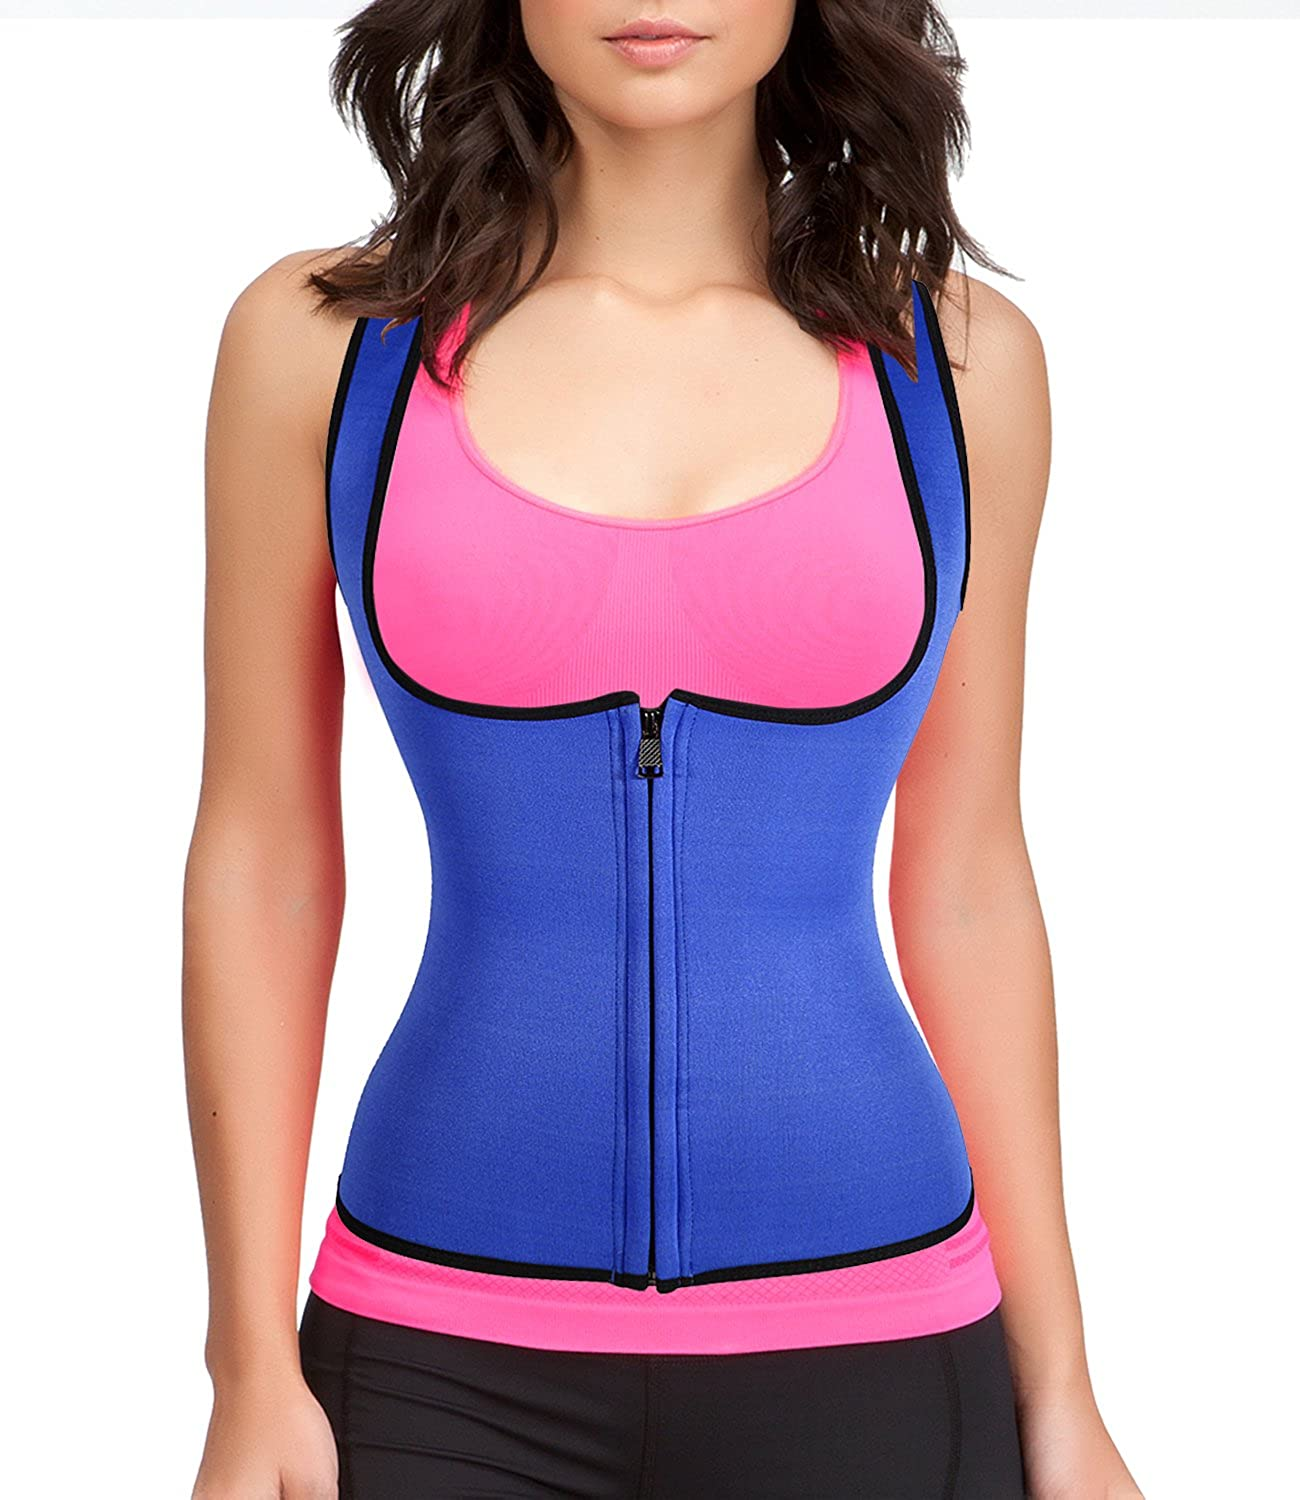 Junlan Slimming Neoprene Vest Hot Sweat Shirt Body Shapers for Smooth Muffin Top